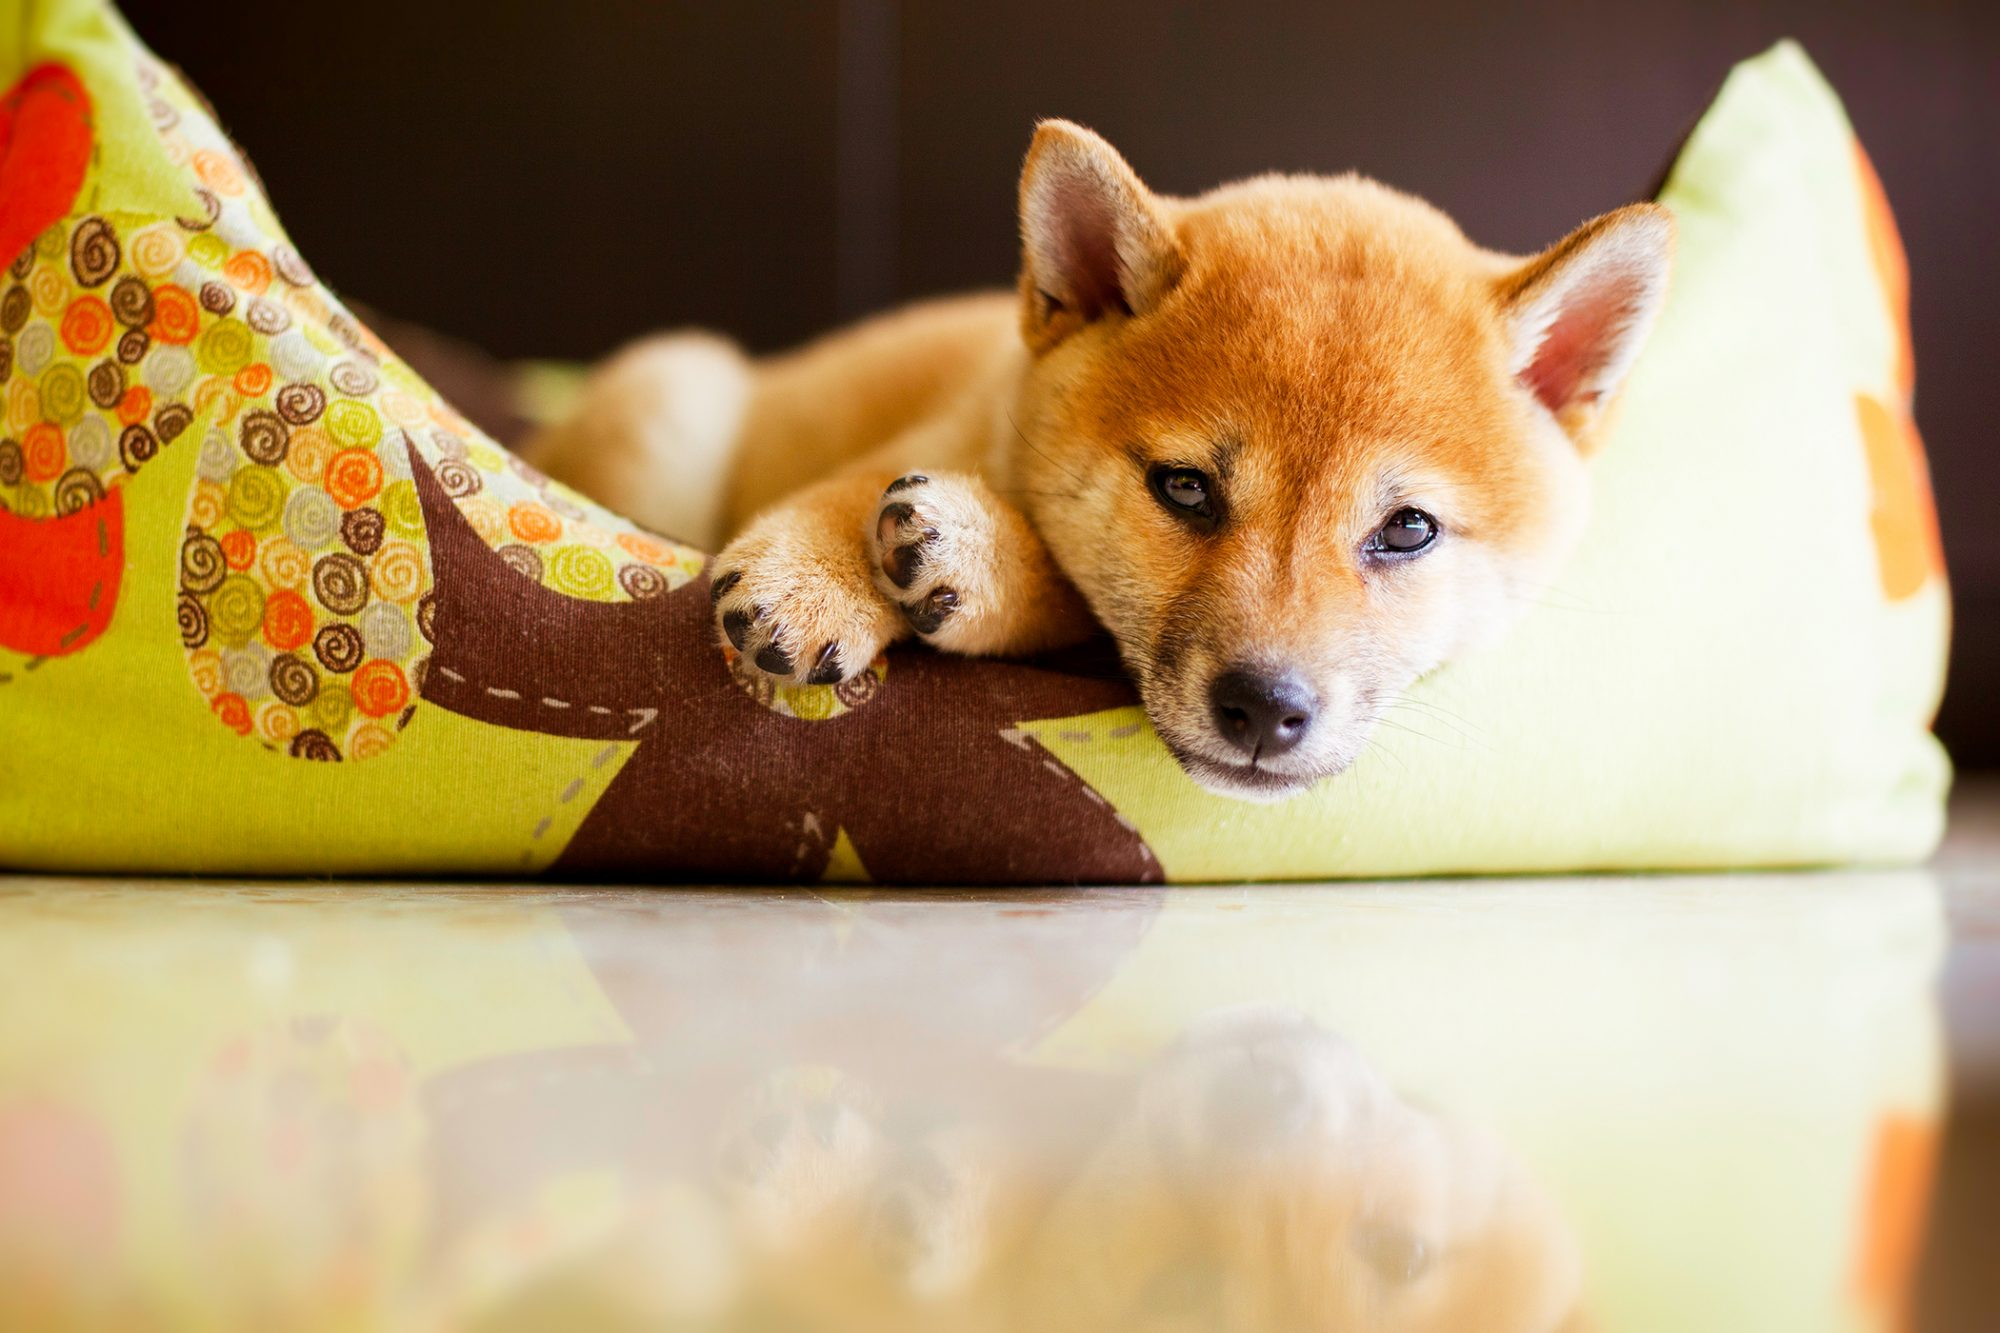 Shiba Inu puppy laying in a dog bed